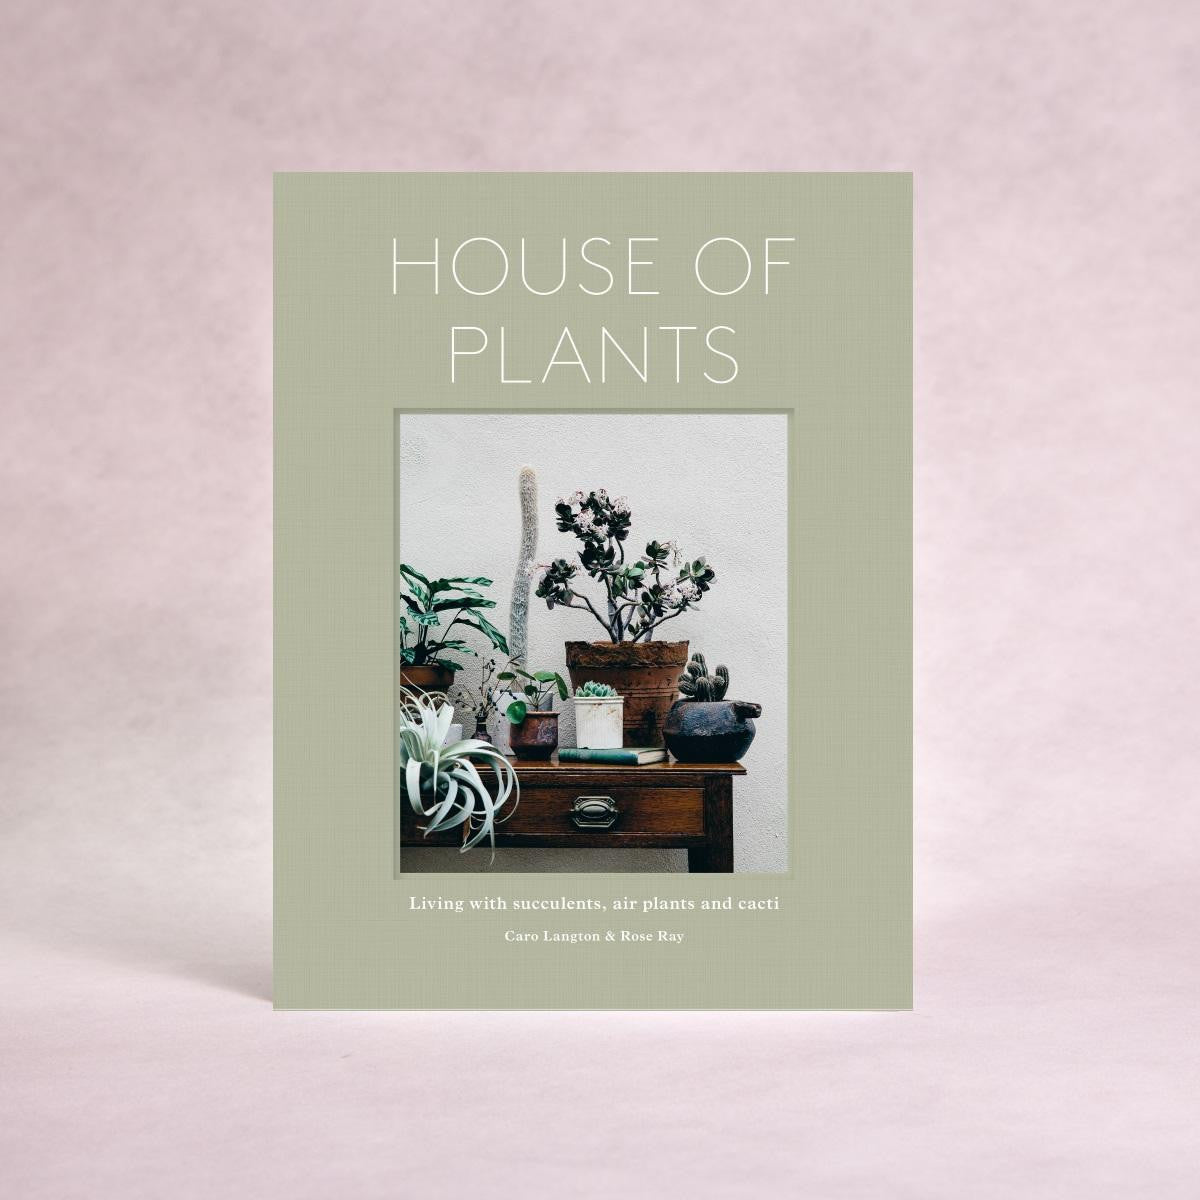 Gardening Book - House of Plants | By Rose Ray & Caro Langton - Throw Some Seeds